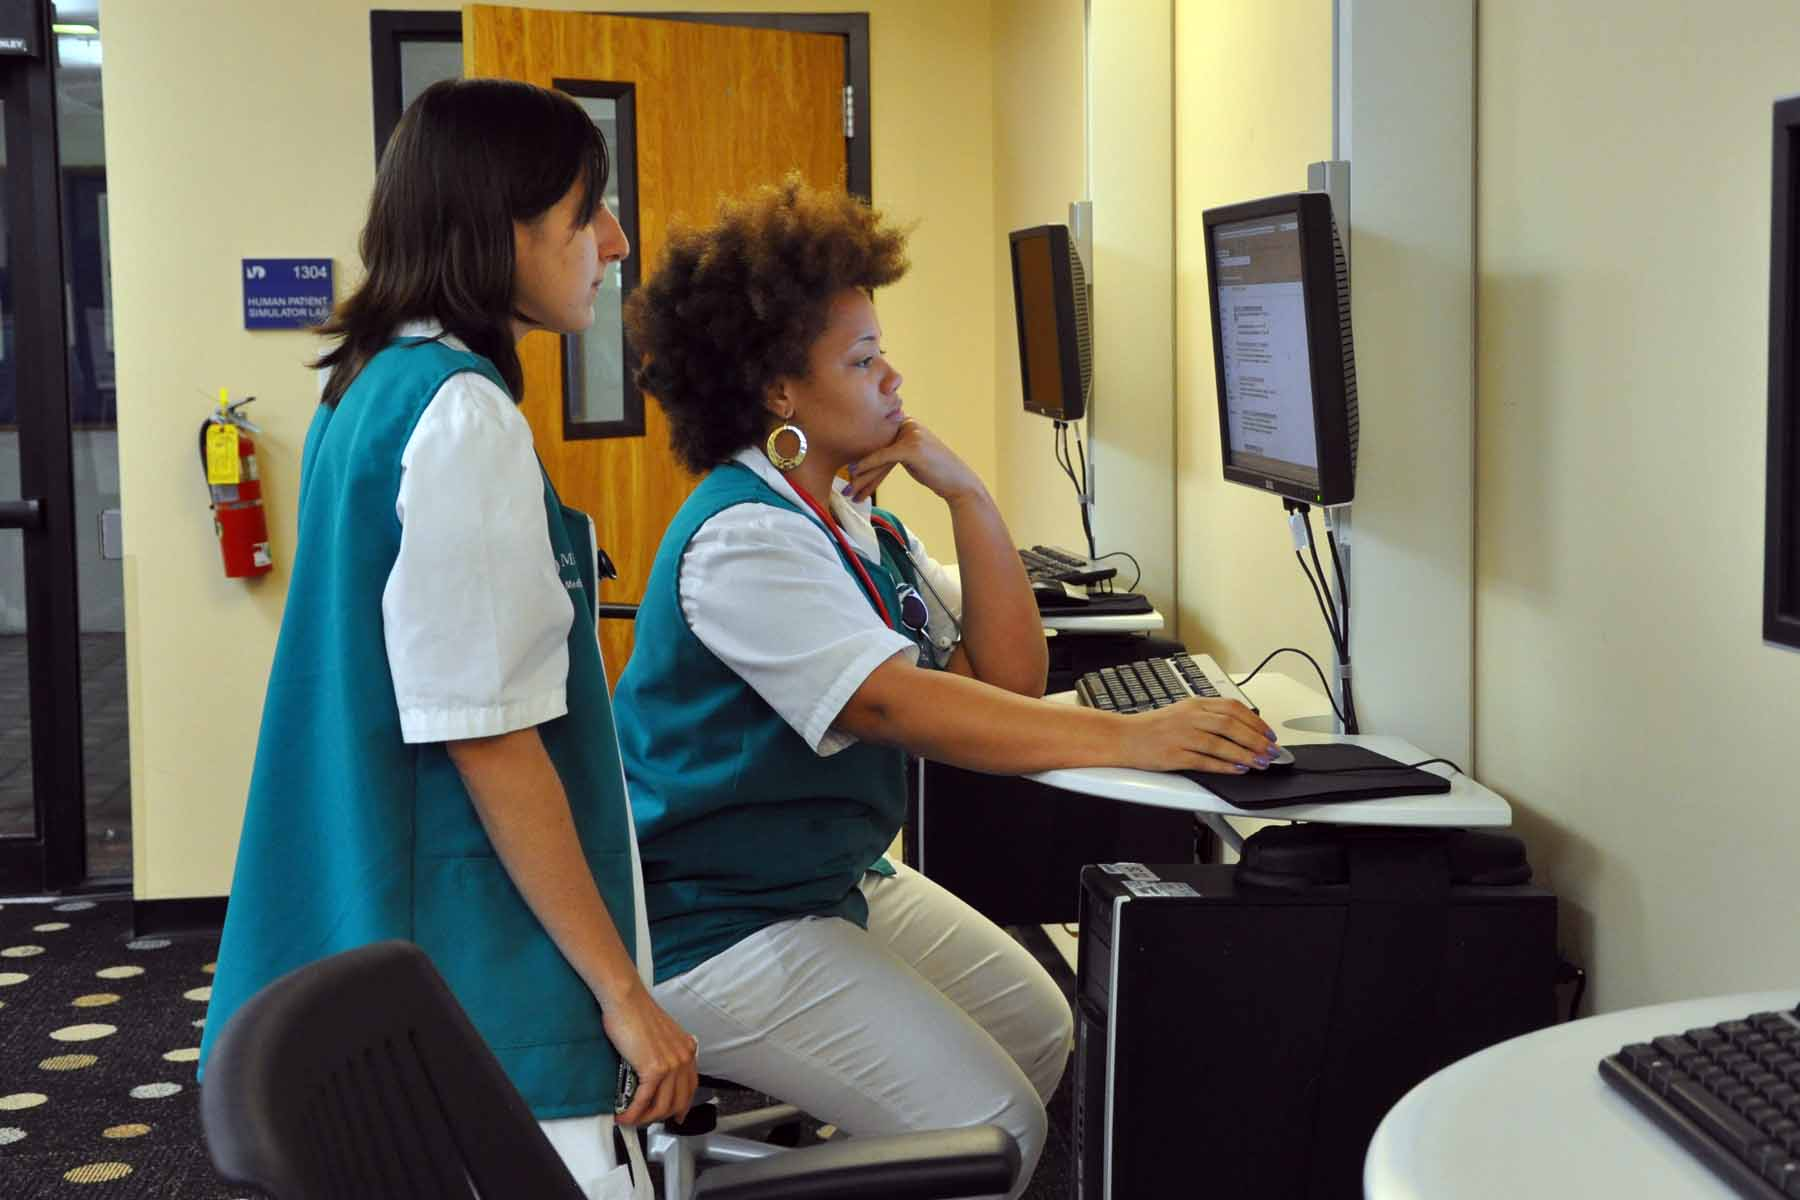 Students using a computer at the Success Center Medical Campus